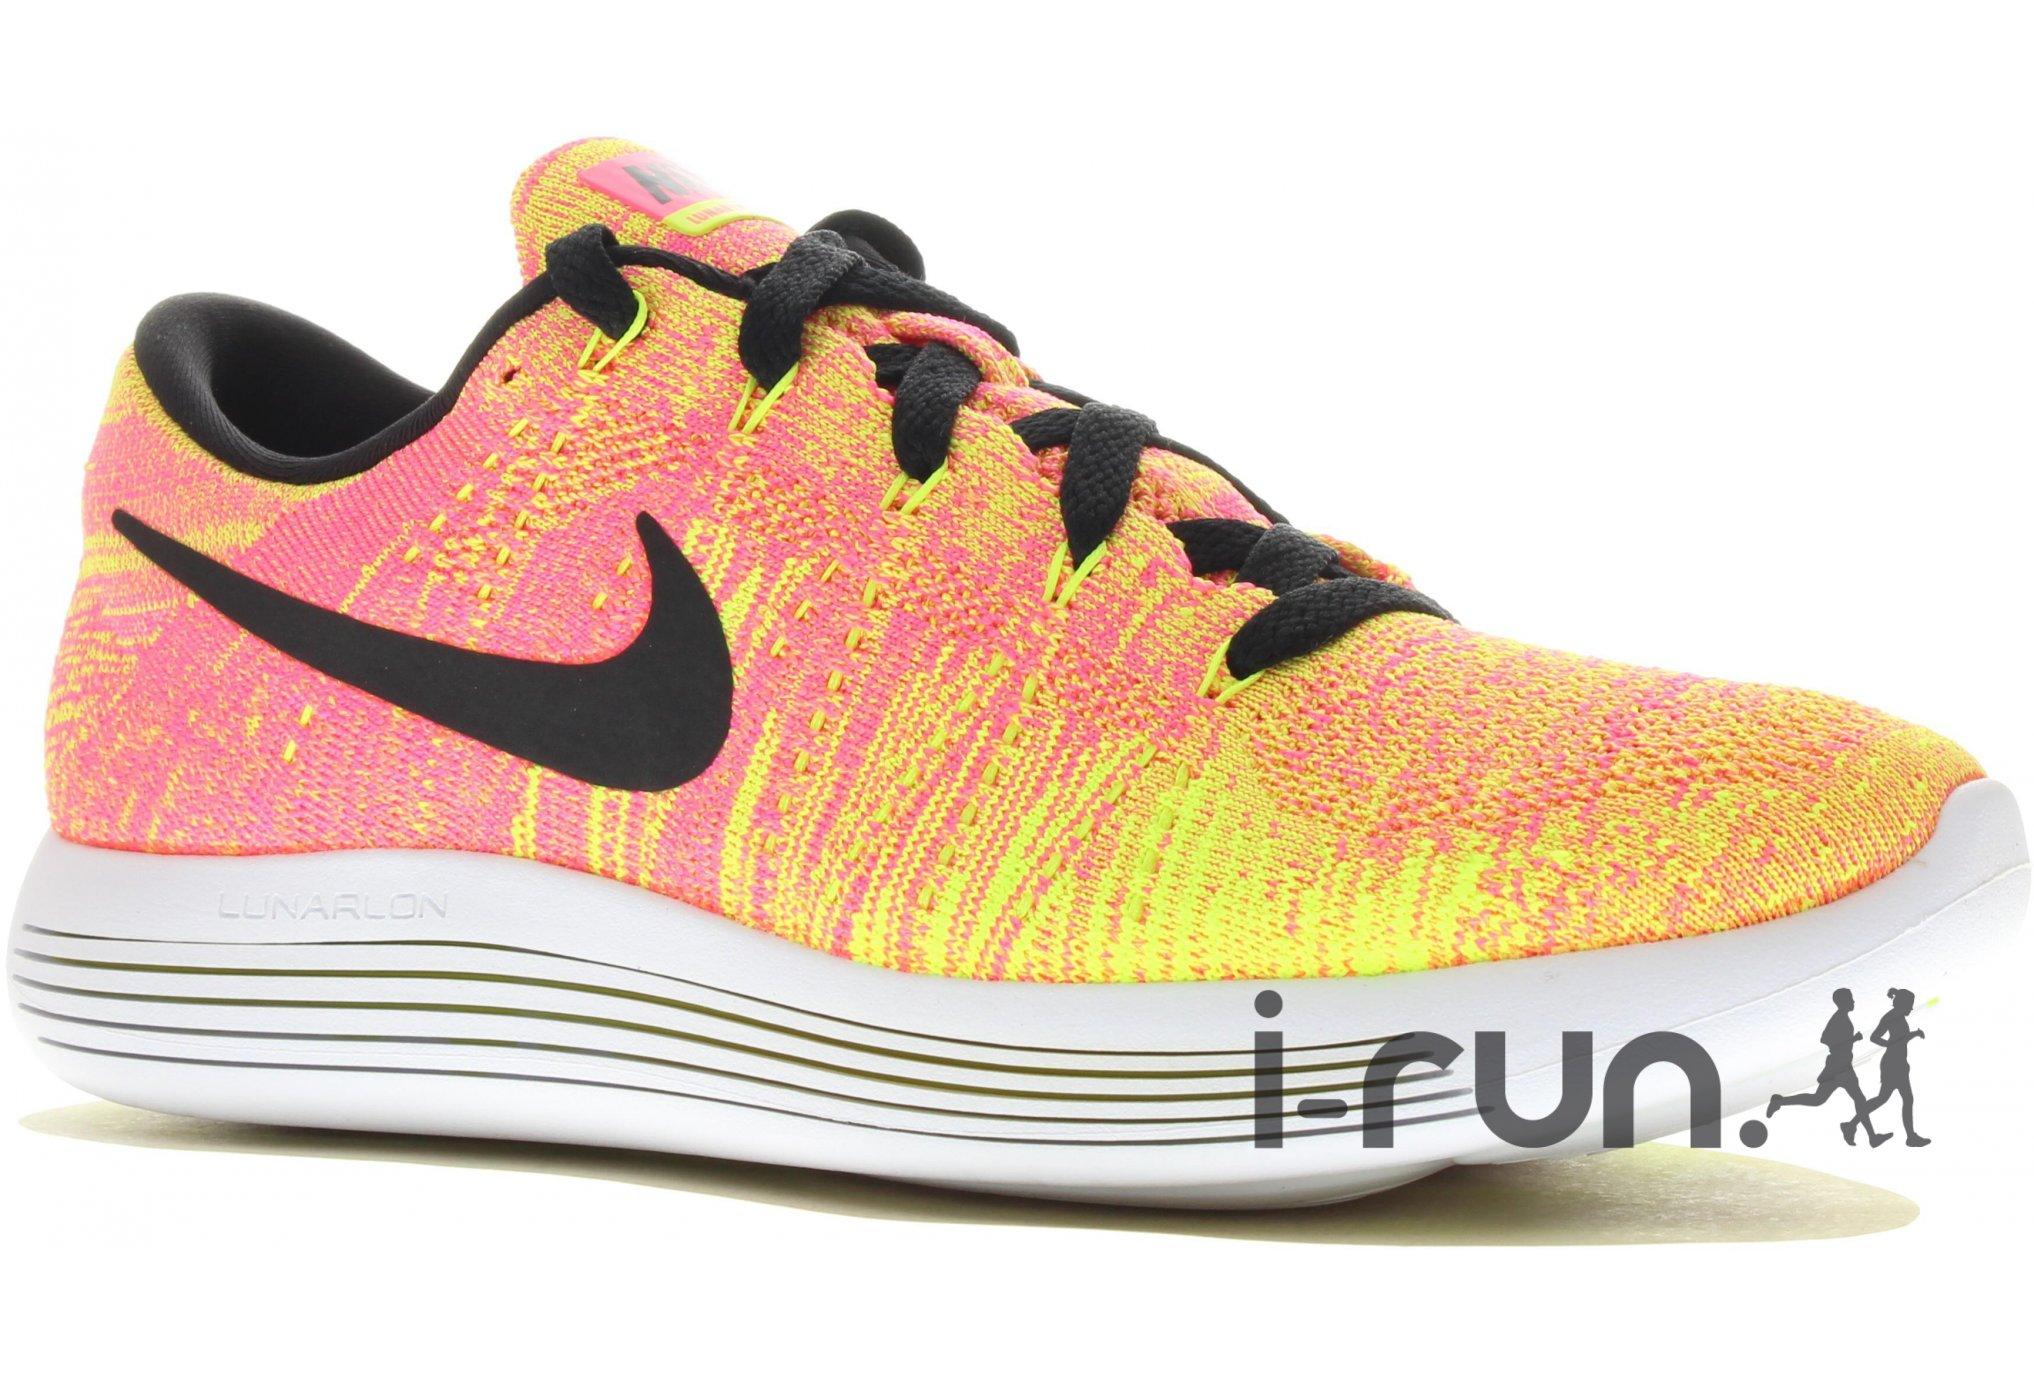 Nike LunarEpic Low Flyknit OC W Chaussures running femme